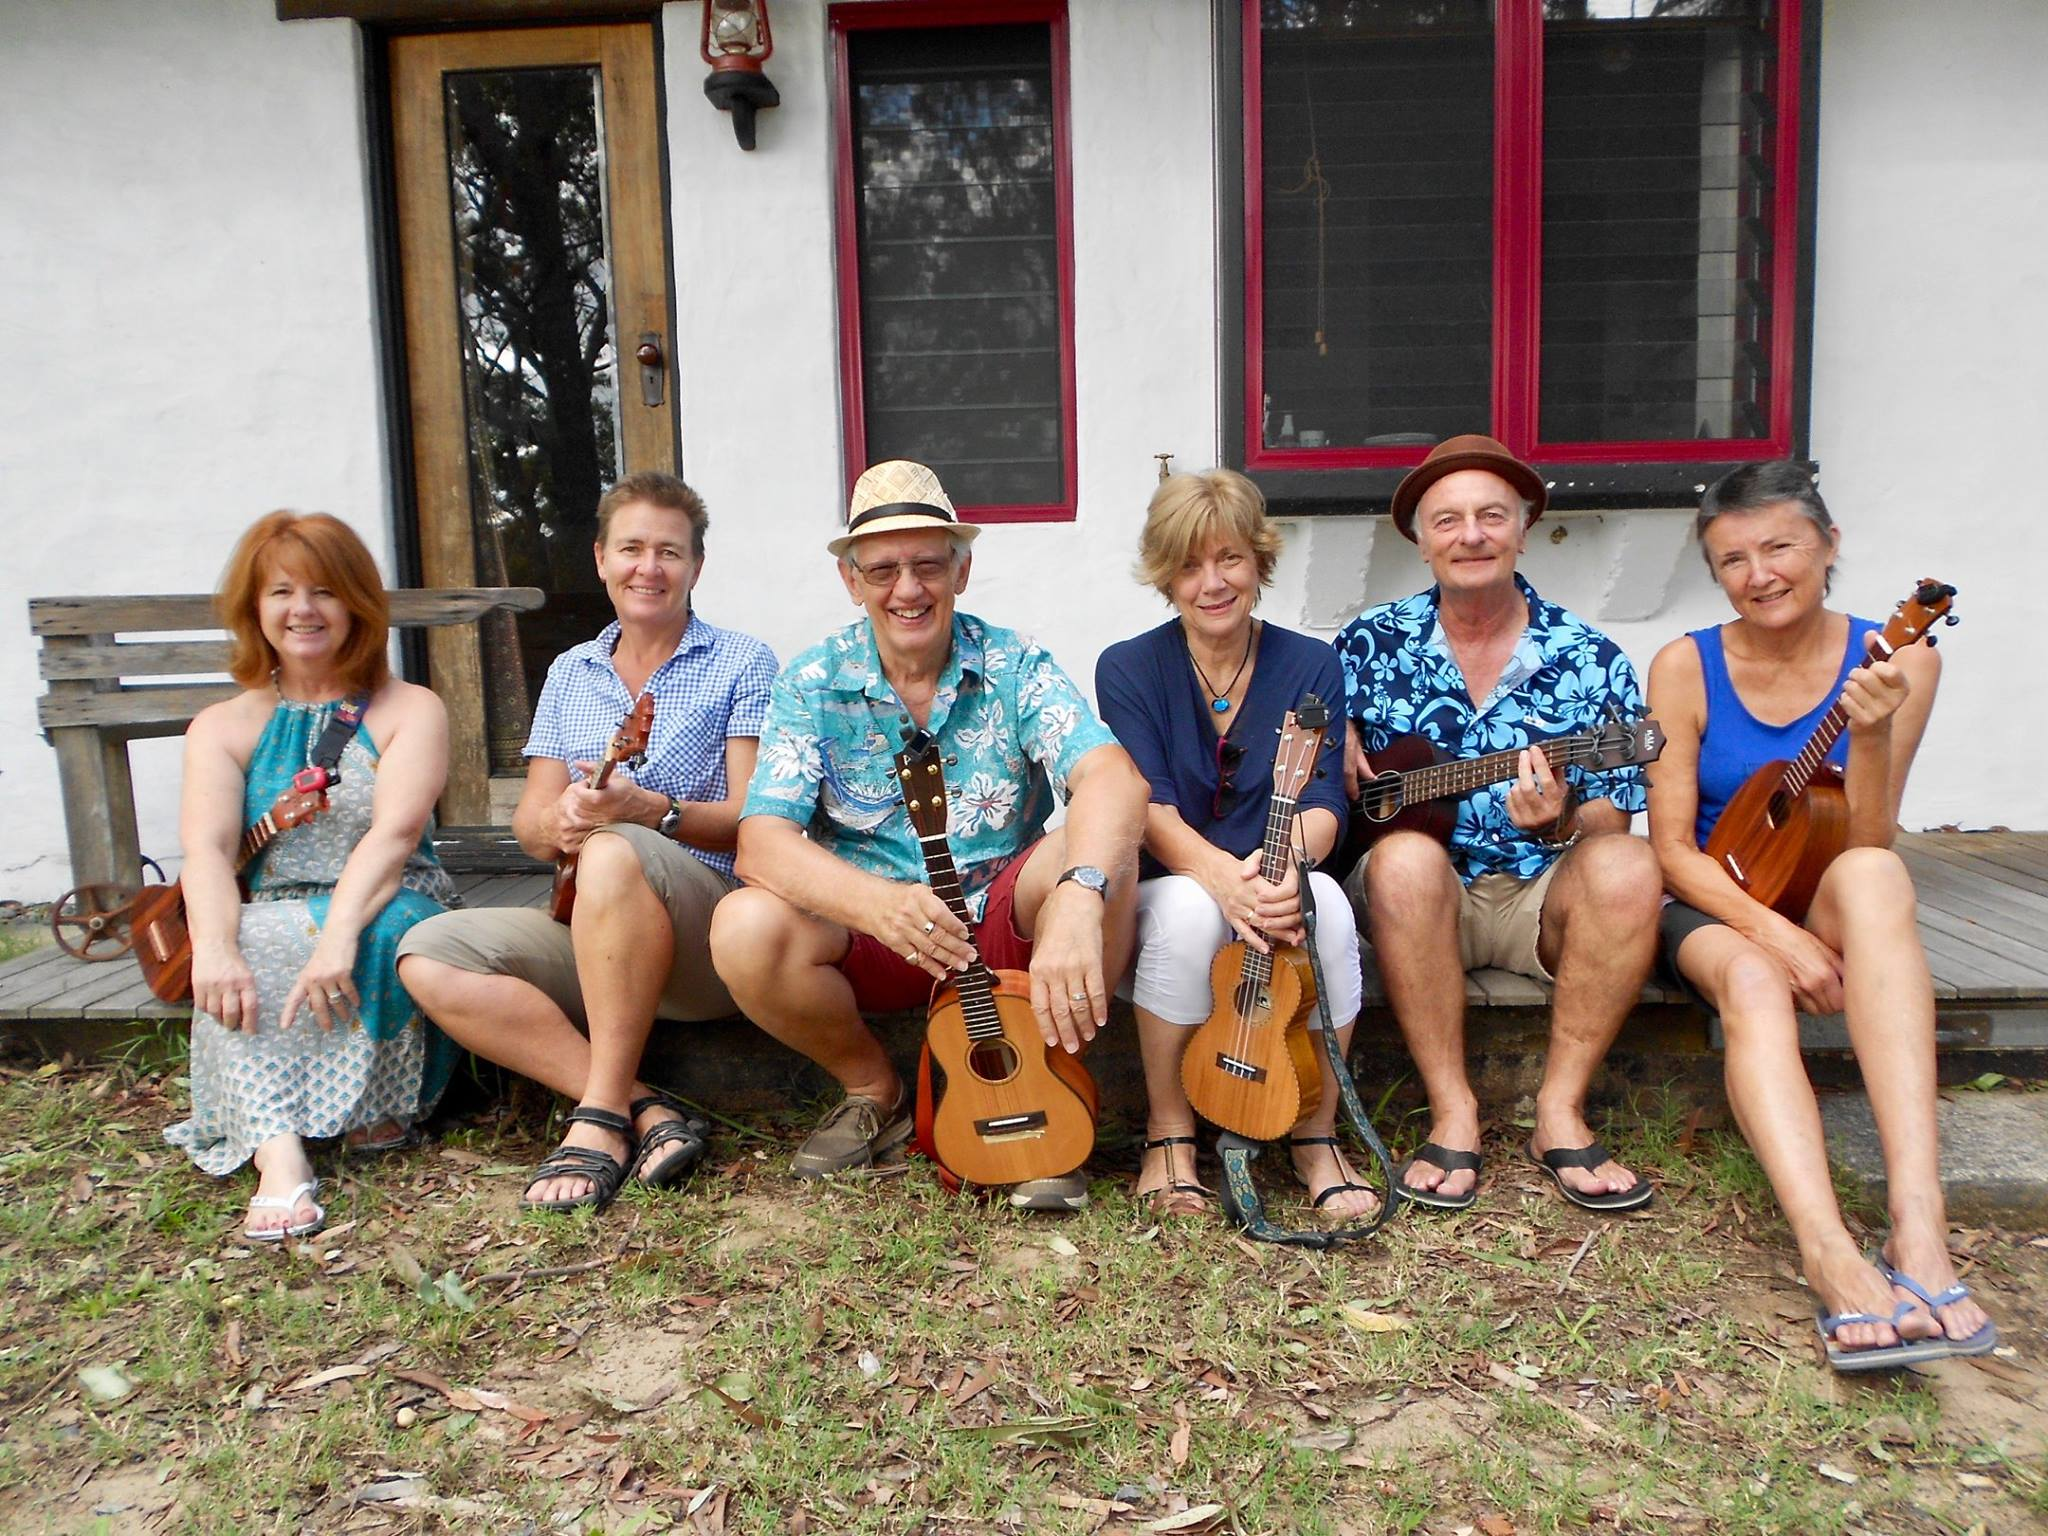 ukulele band, uke player, sunshine coast ukulele masters, sunshine coast ukulele festival